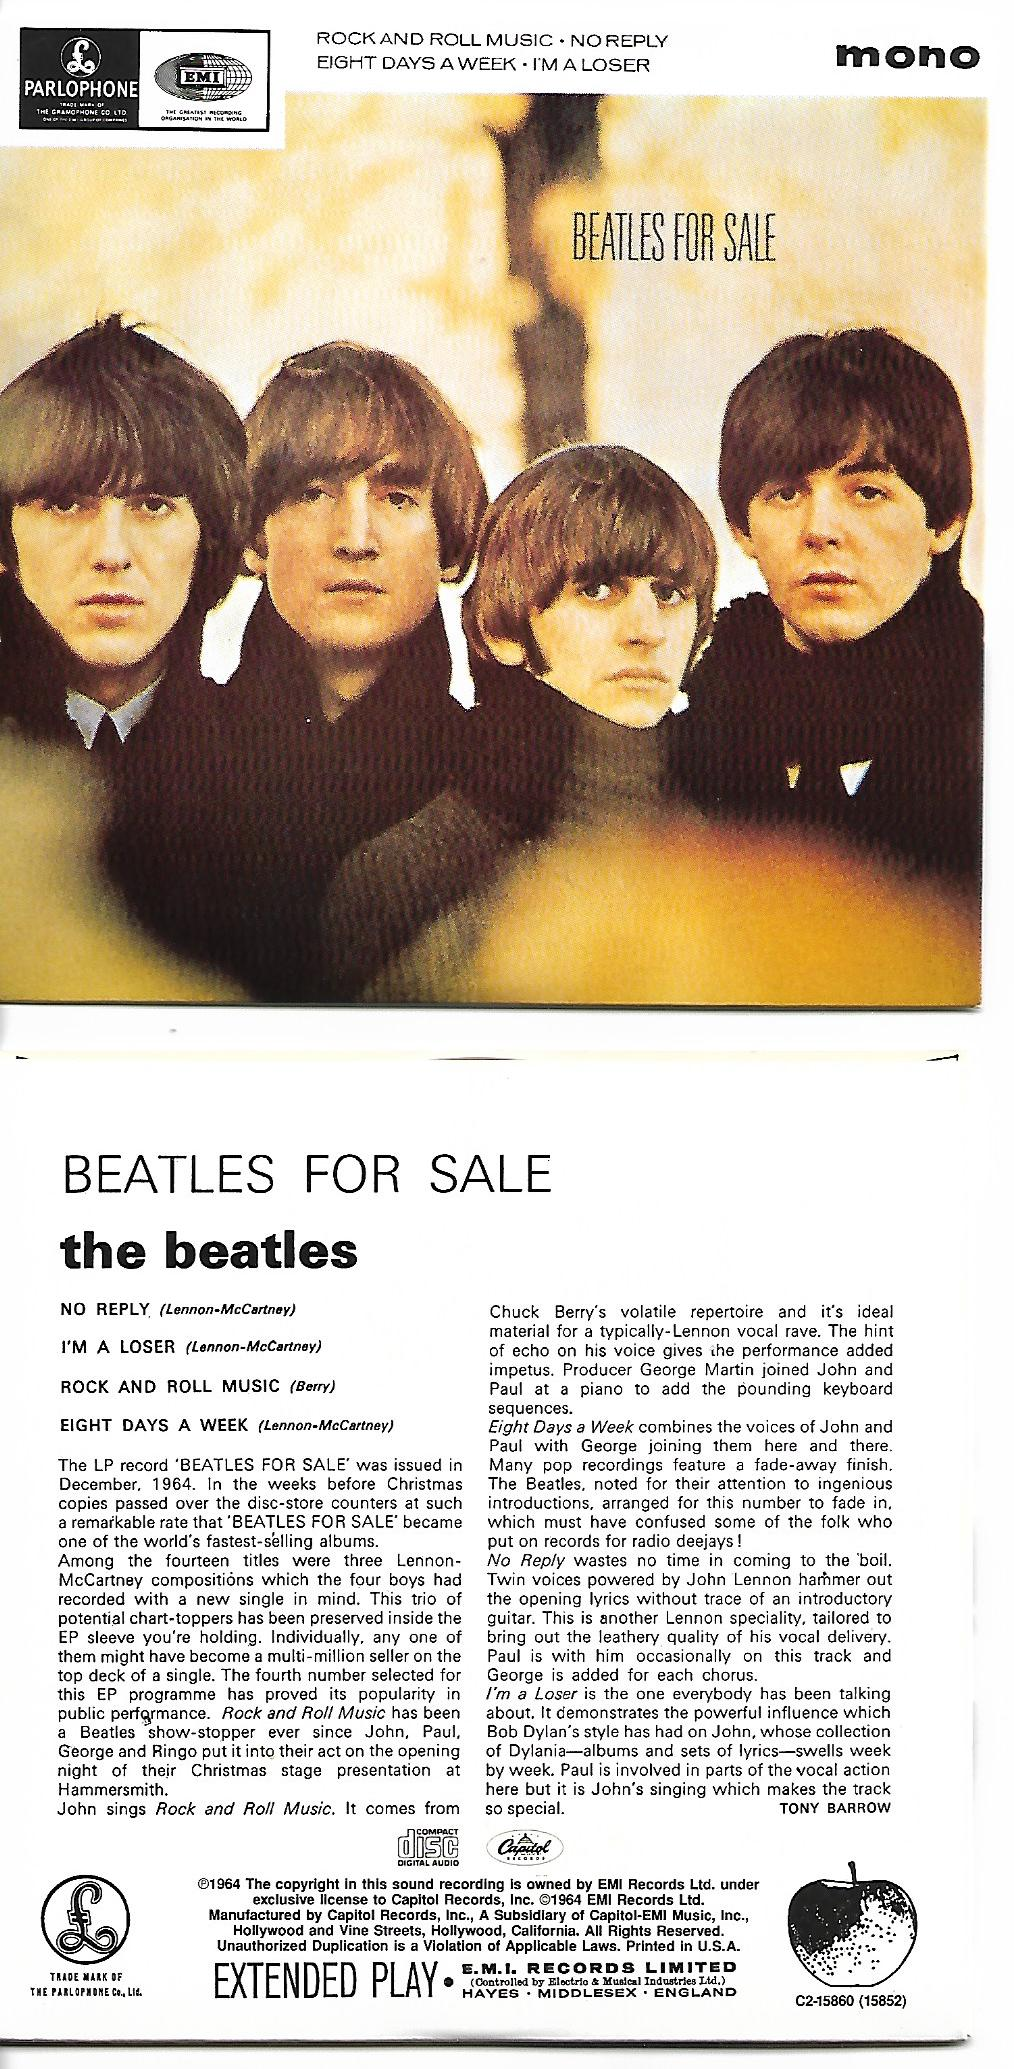 THE BEATLES - Beatles For Sale EP REPLICA 4-TRACK CARD SLEEVE - CD single